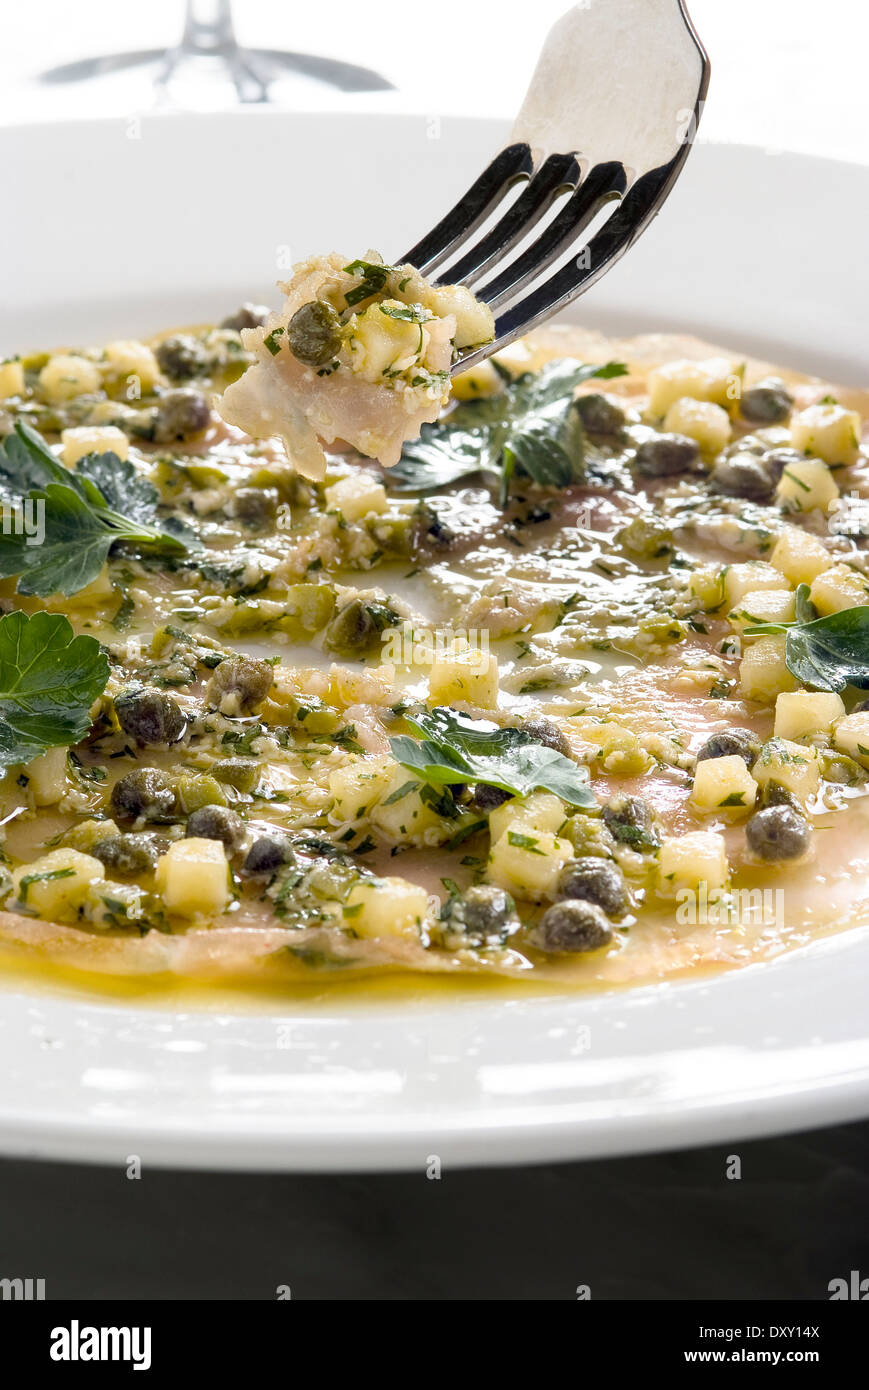 Veal carpaccio with capers and parmesan - Stock Image